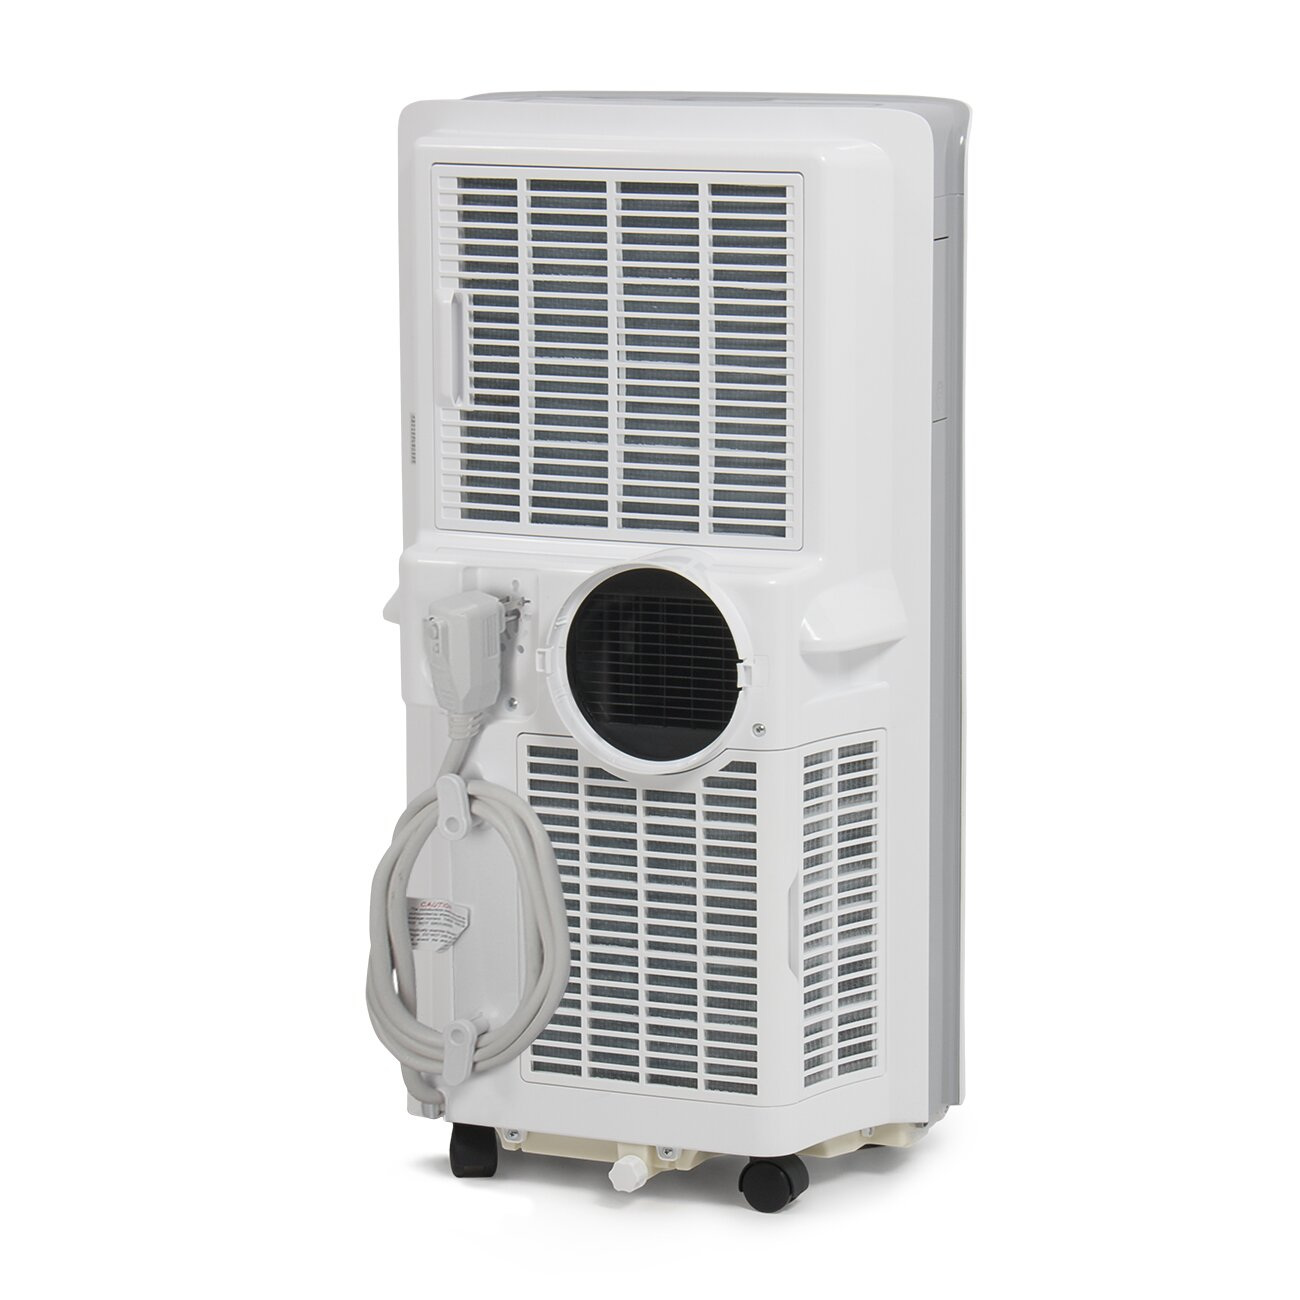 #4A5159 Della Heater Dehumidifier 14.000 BTU Evaporative Portable  Most Recent 13510 Portable Air Conditioner Ratings image with 1300x1300 px on helpvideos.info - Air Conditioners, Air Coolers and more